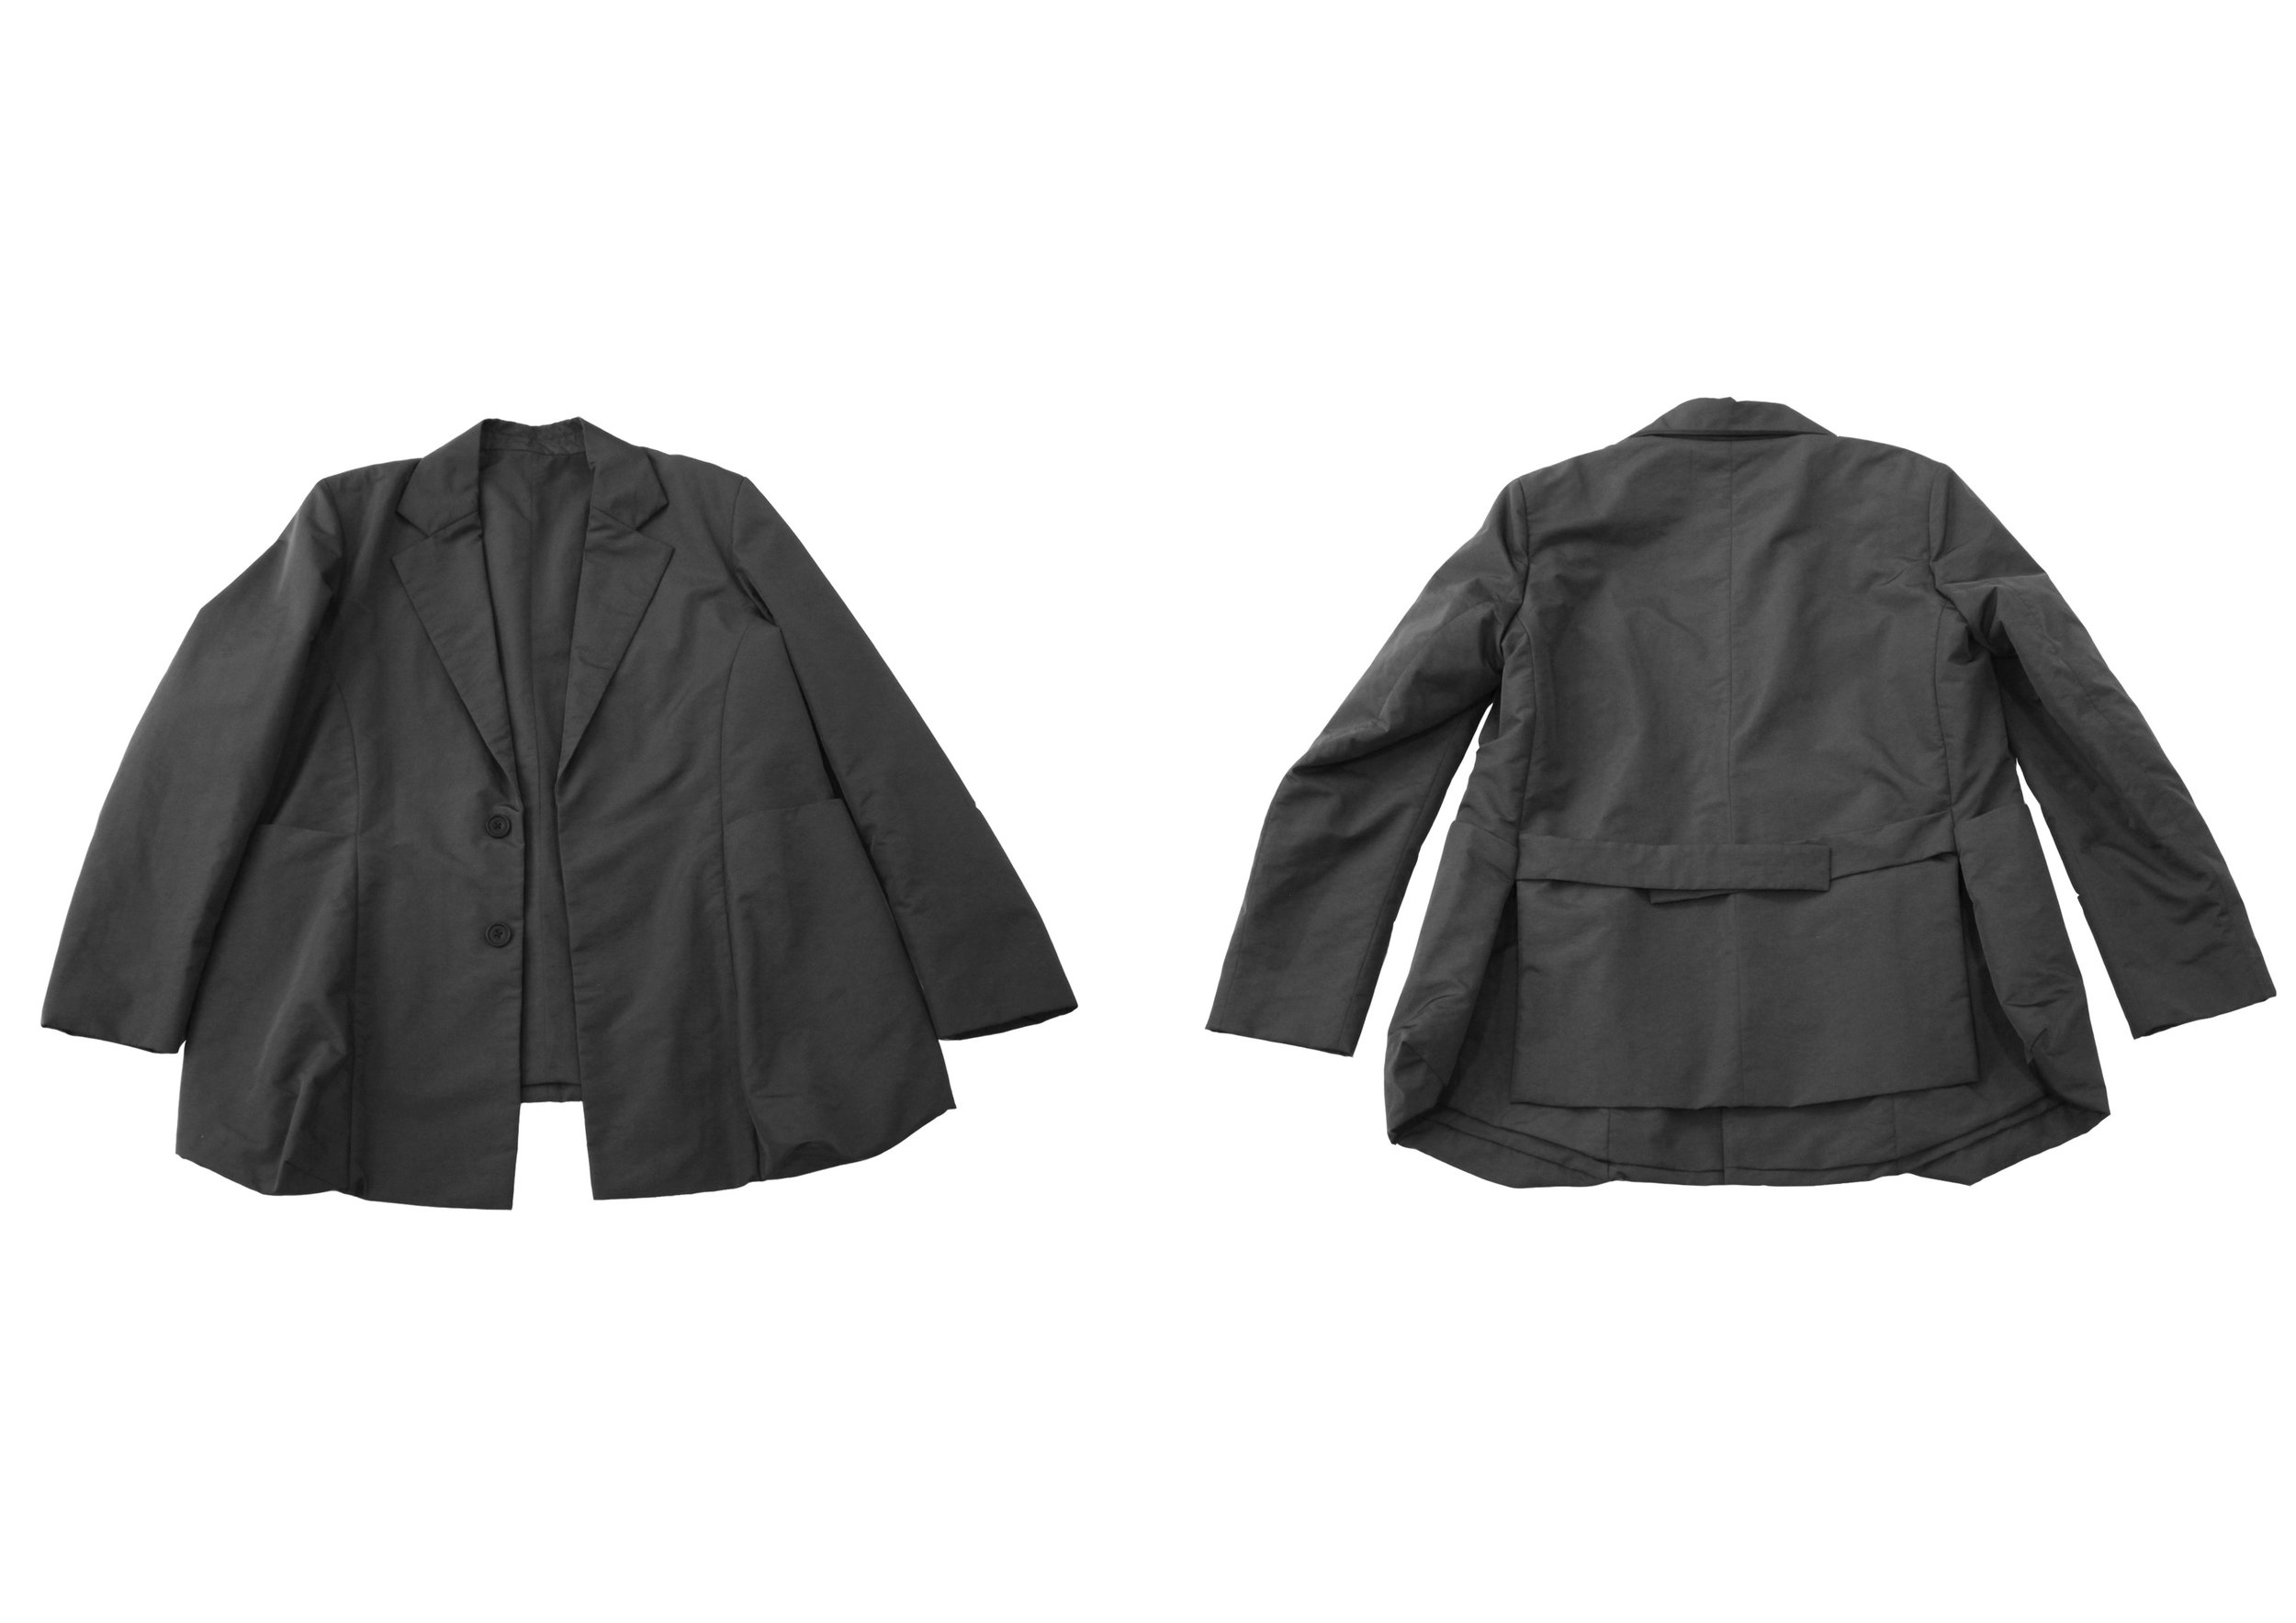 Rainproof Tailoring   Triple Layers System  Side Pockets  Horn Buttons  Composition: 68% Nylon , 32% Terylene  Interlayer: Wool Canvas